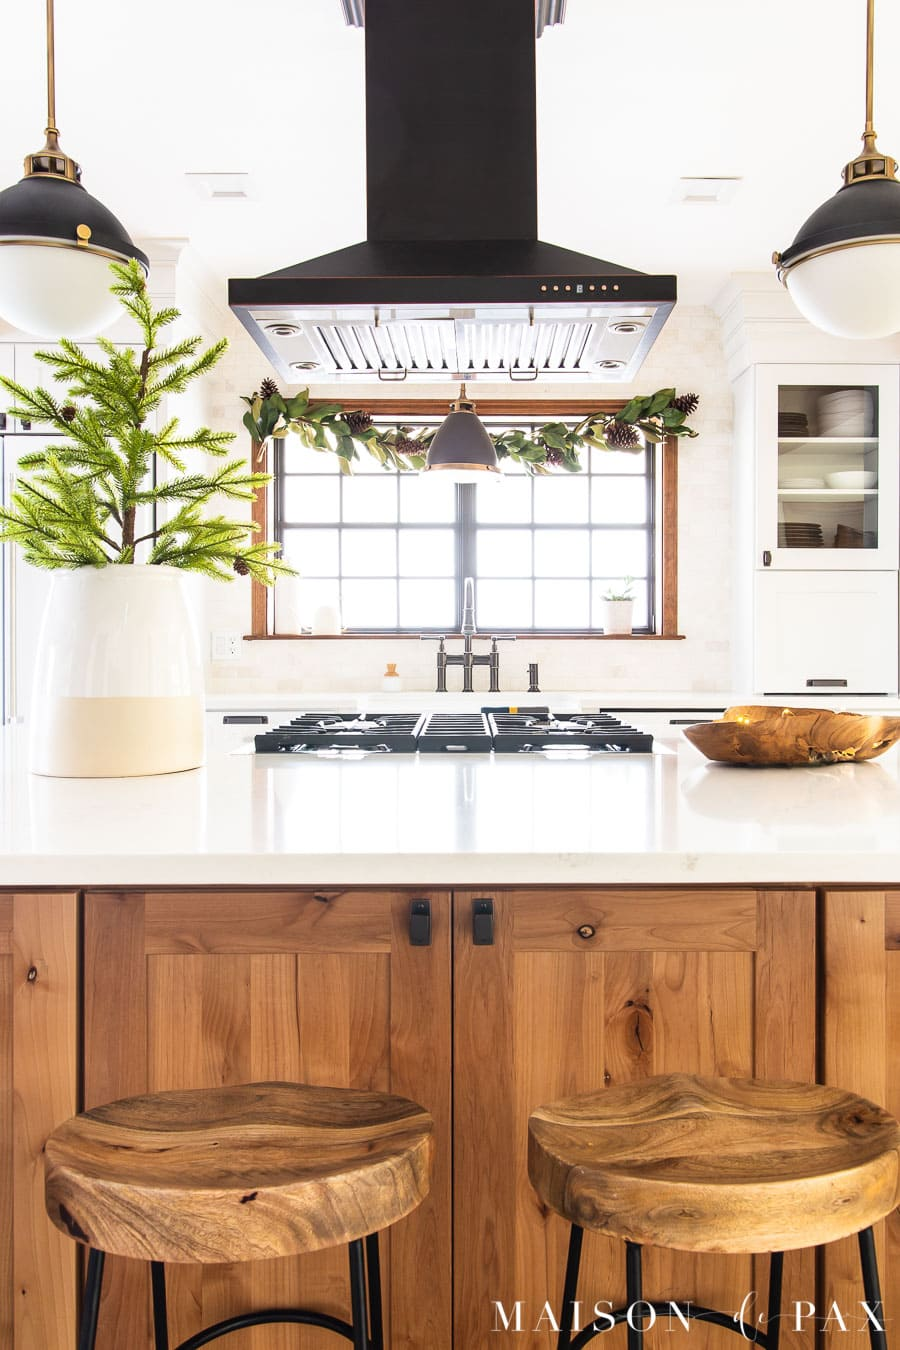 big island kitchen with magnolia garland | Maison de Pax